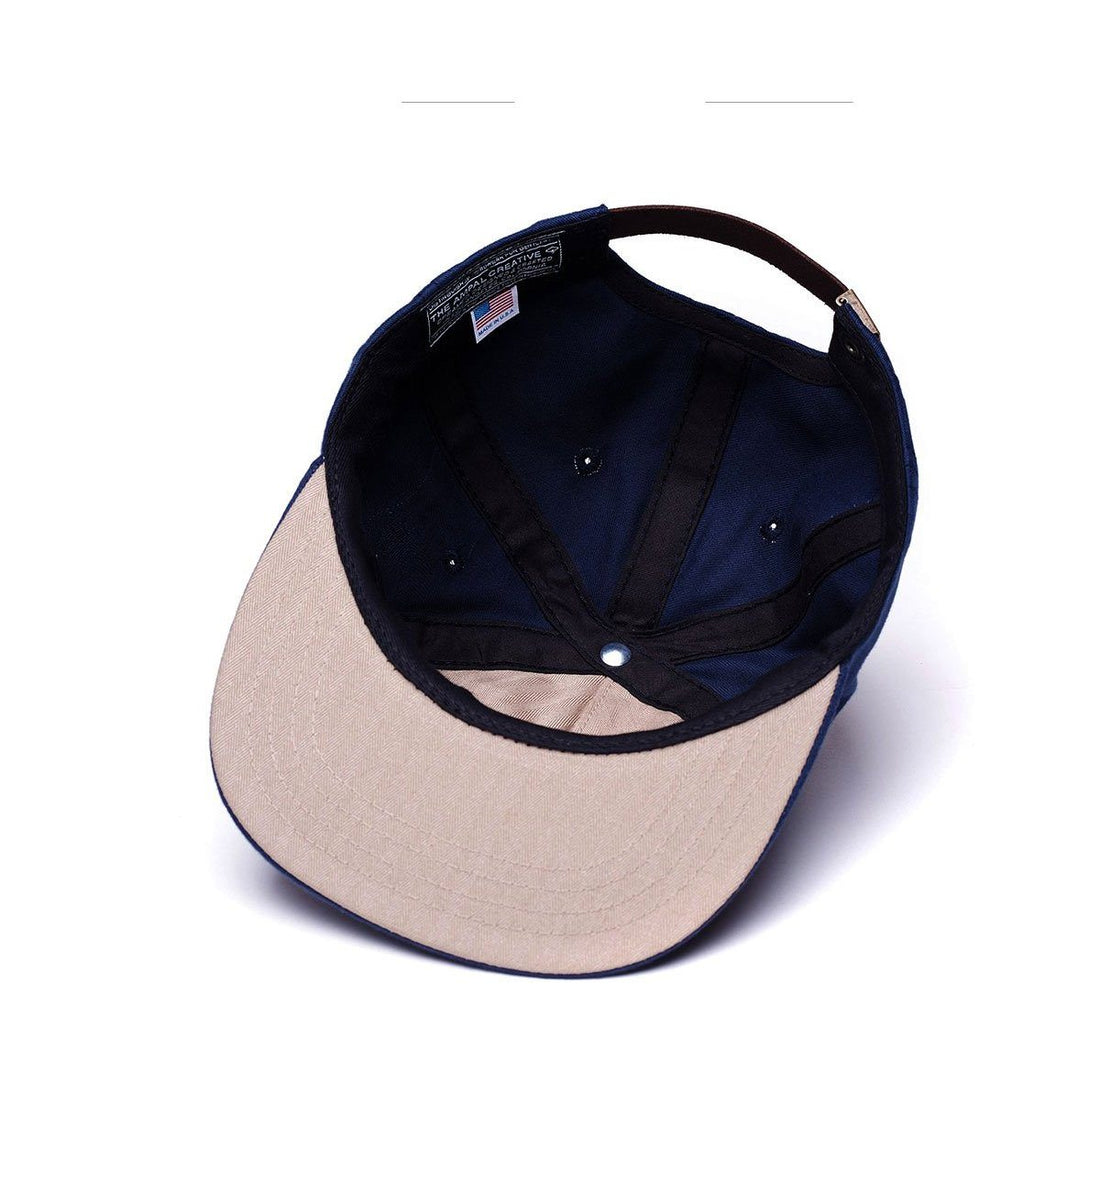 The Ampal Creative Big Sur Pennant - Strapback - Headwear - Iron and Resin